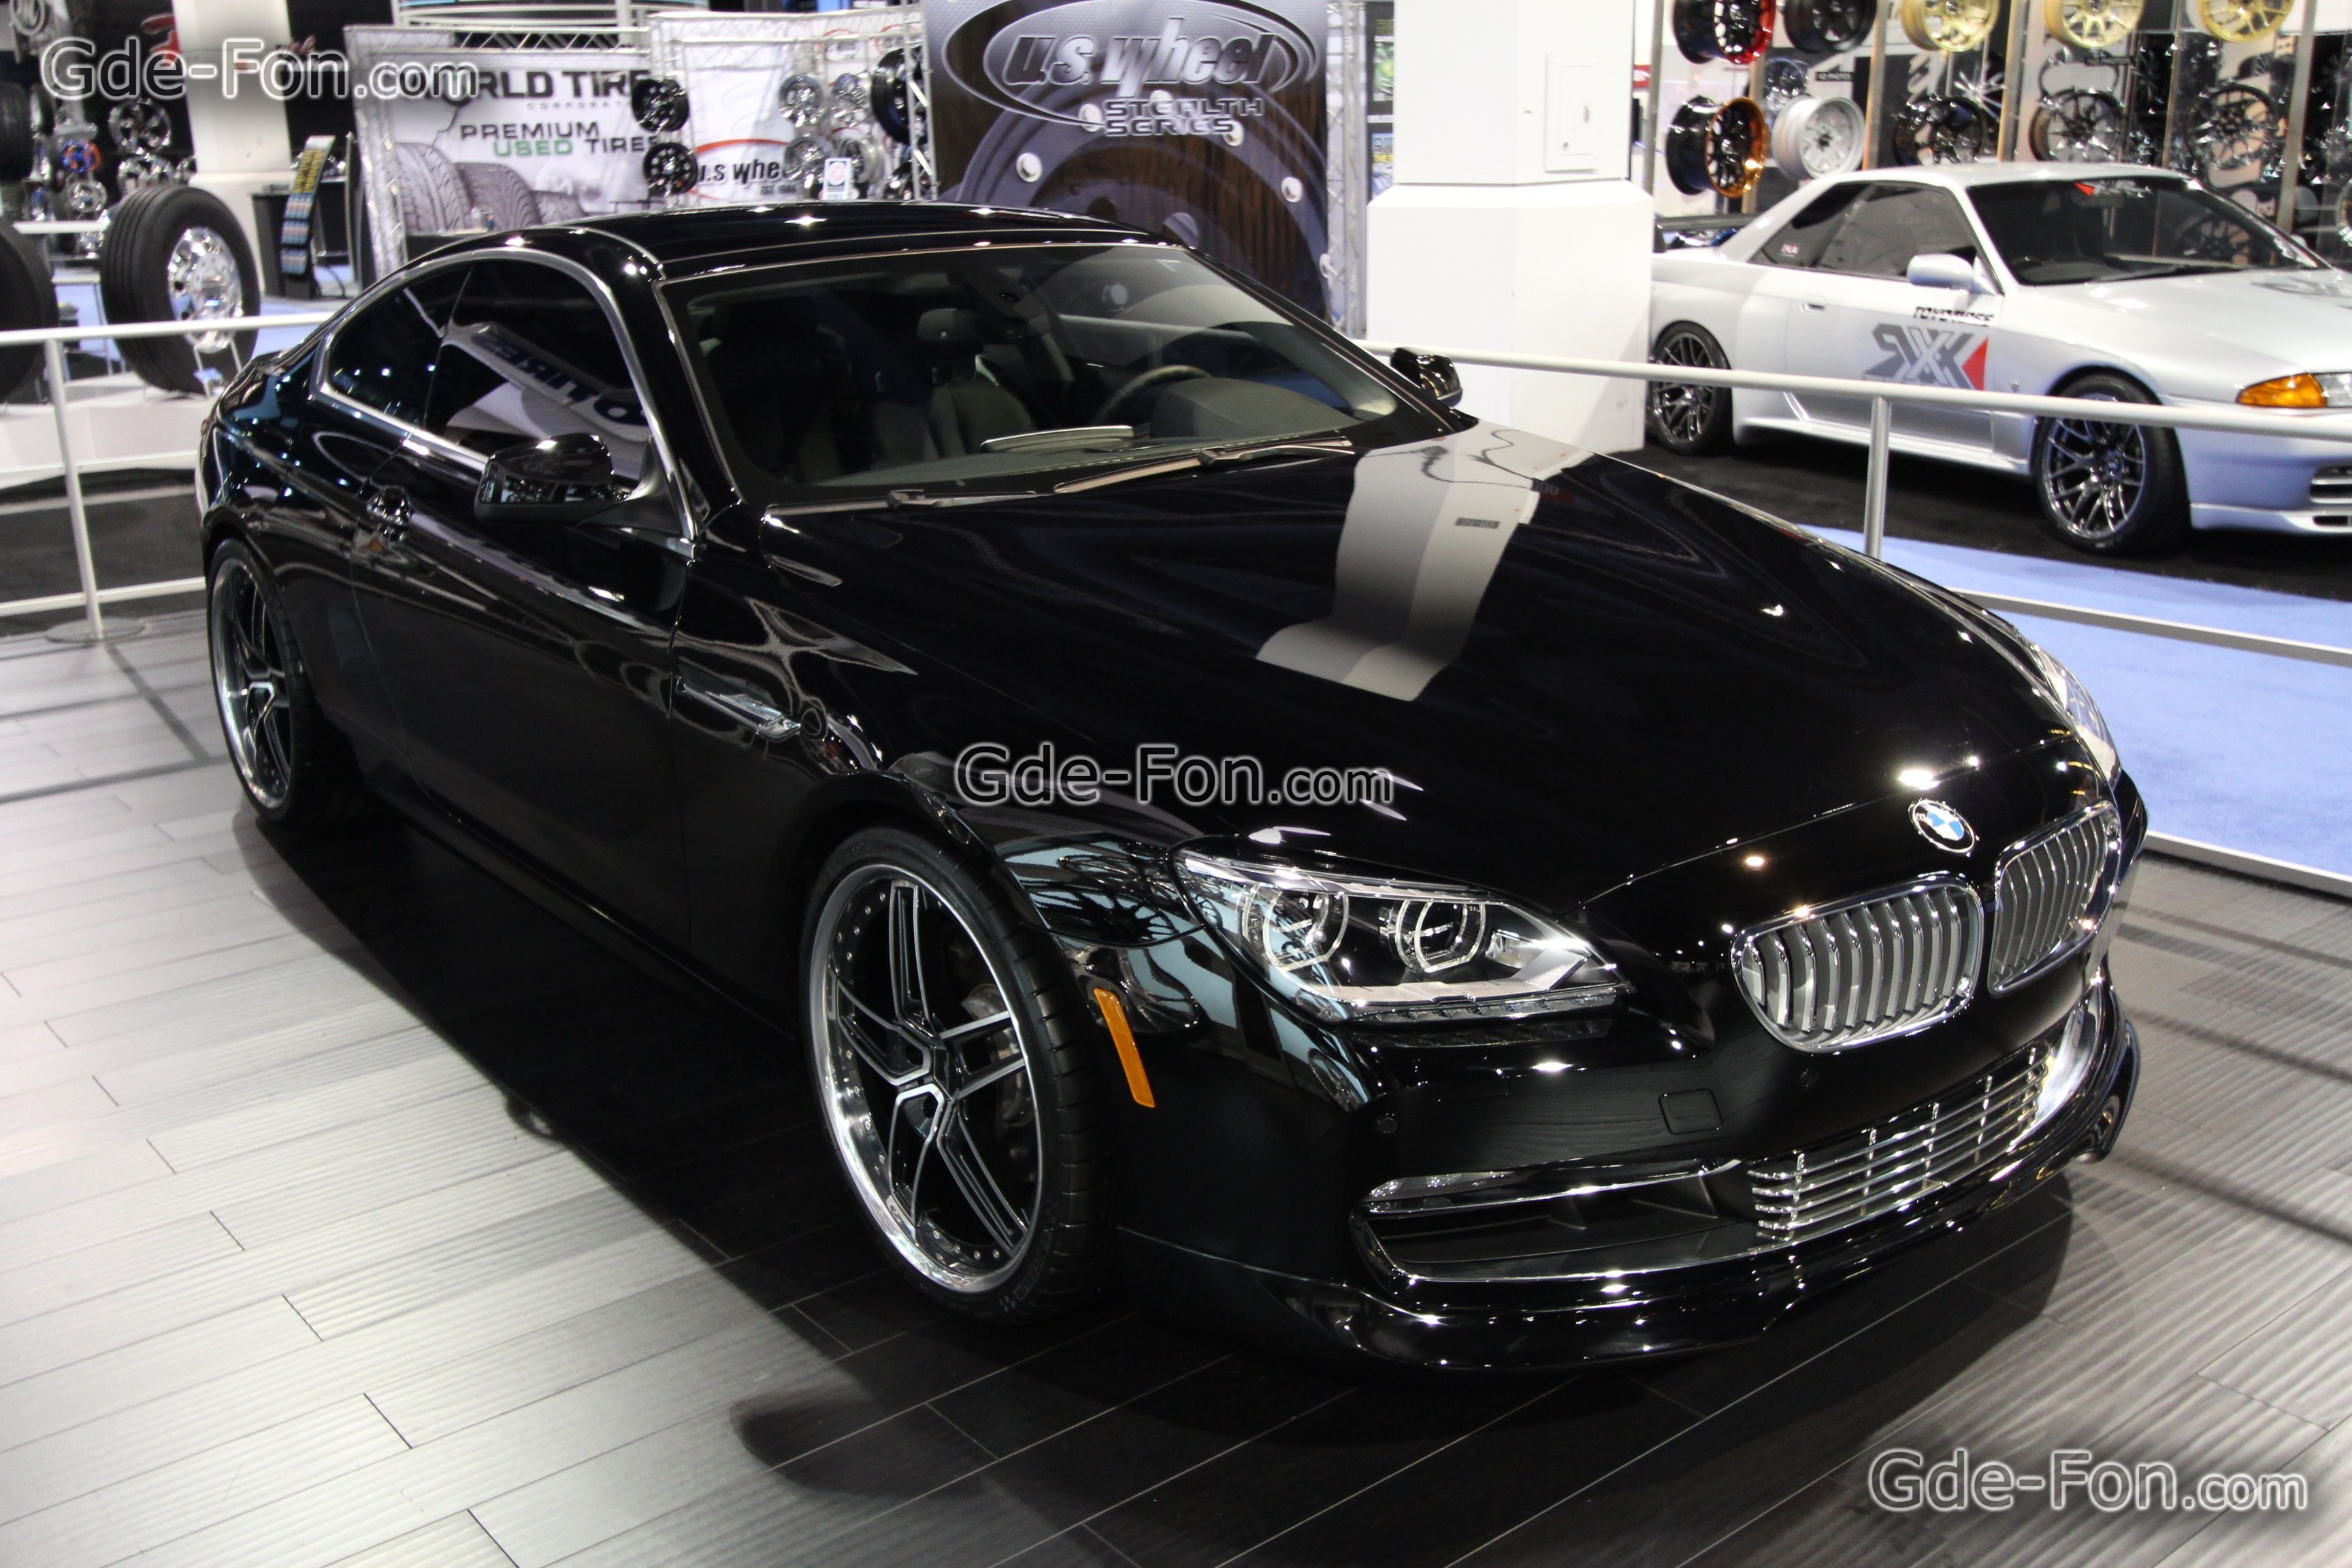 BMW 640i 2011 Review Amazing Pictures and Images  Look at the car